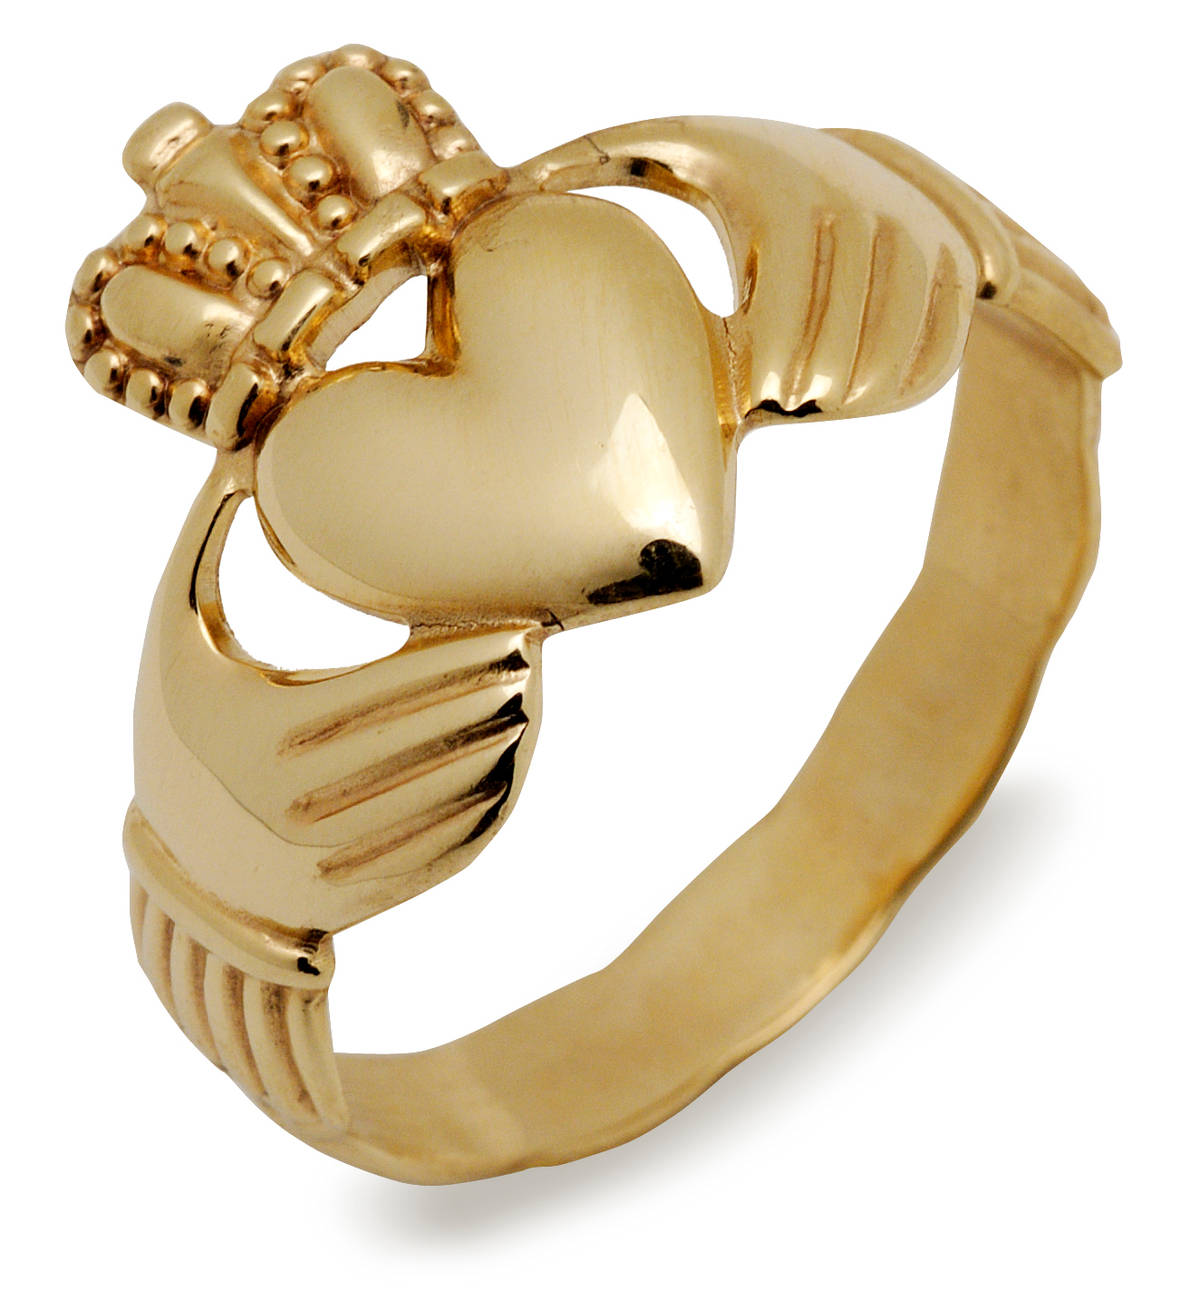 Heavy 10 carat yellow gold Claddagh ring with braided shank.